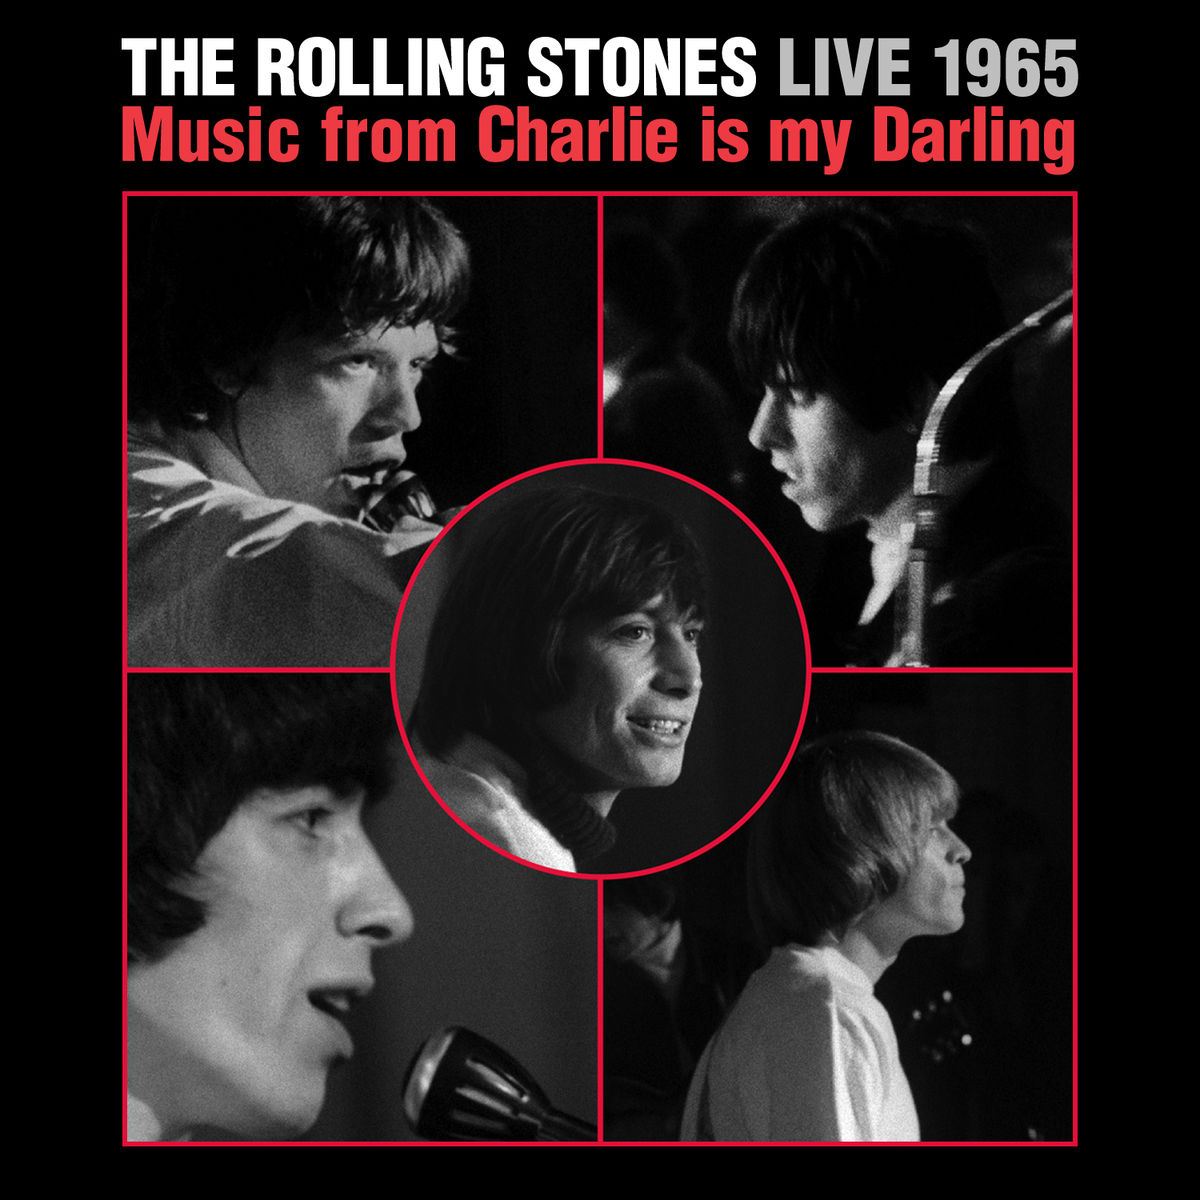 Live 1965: Music from Charlie is my darling